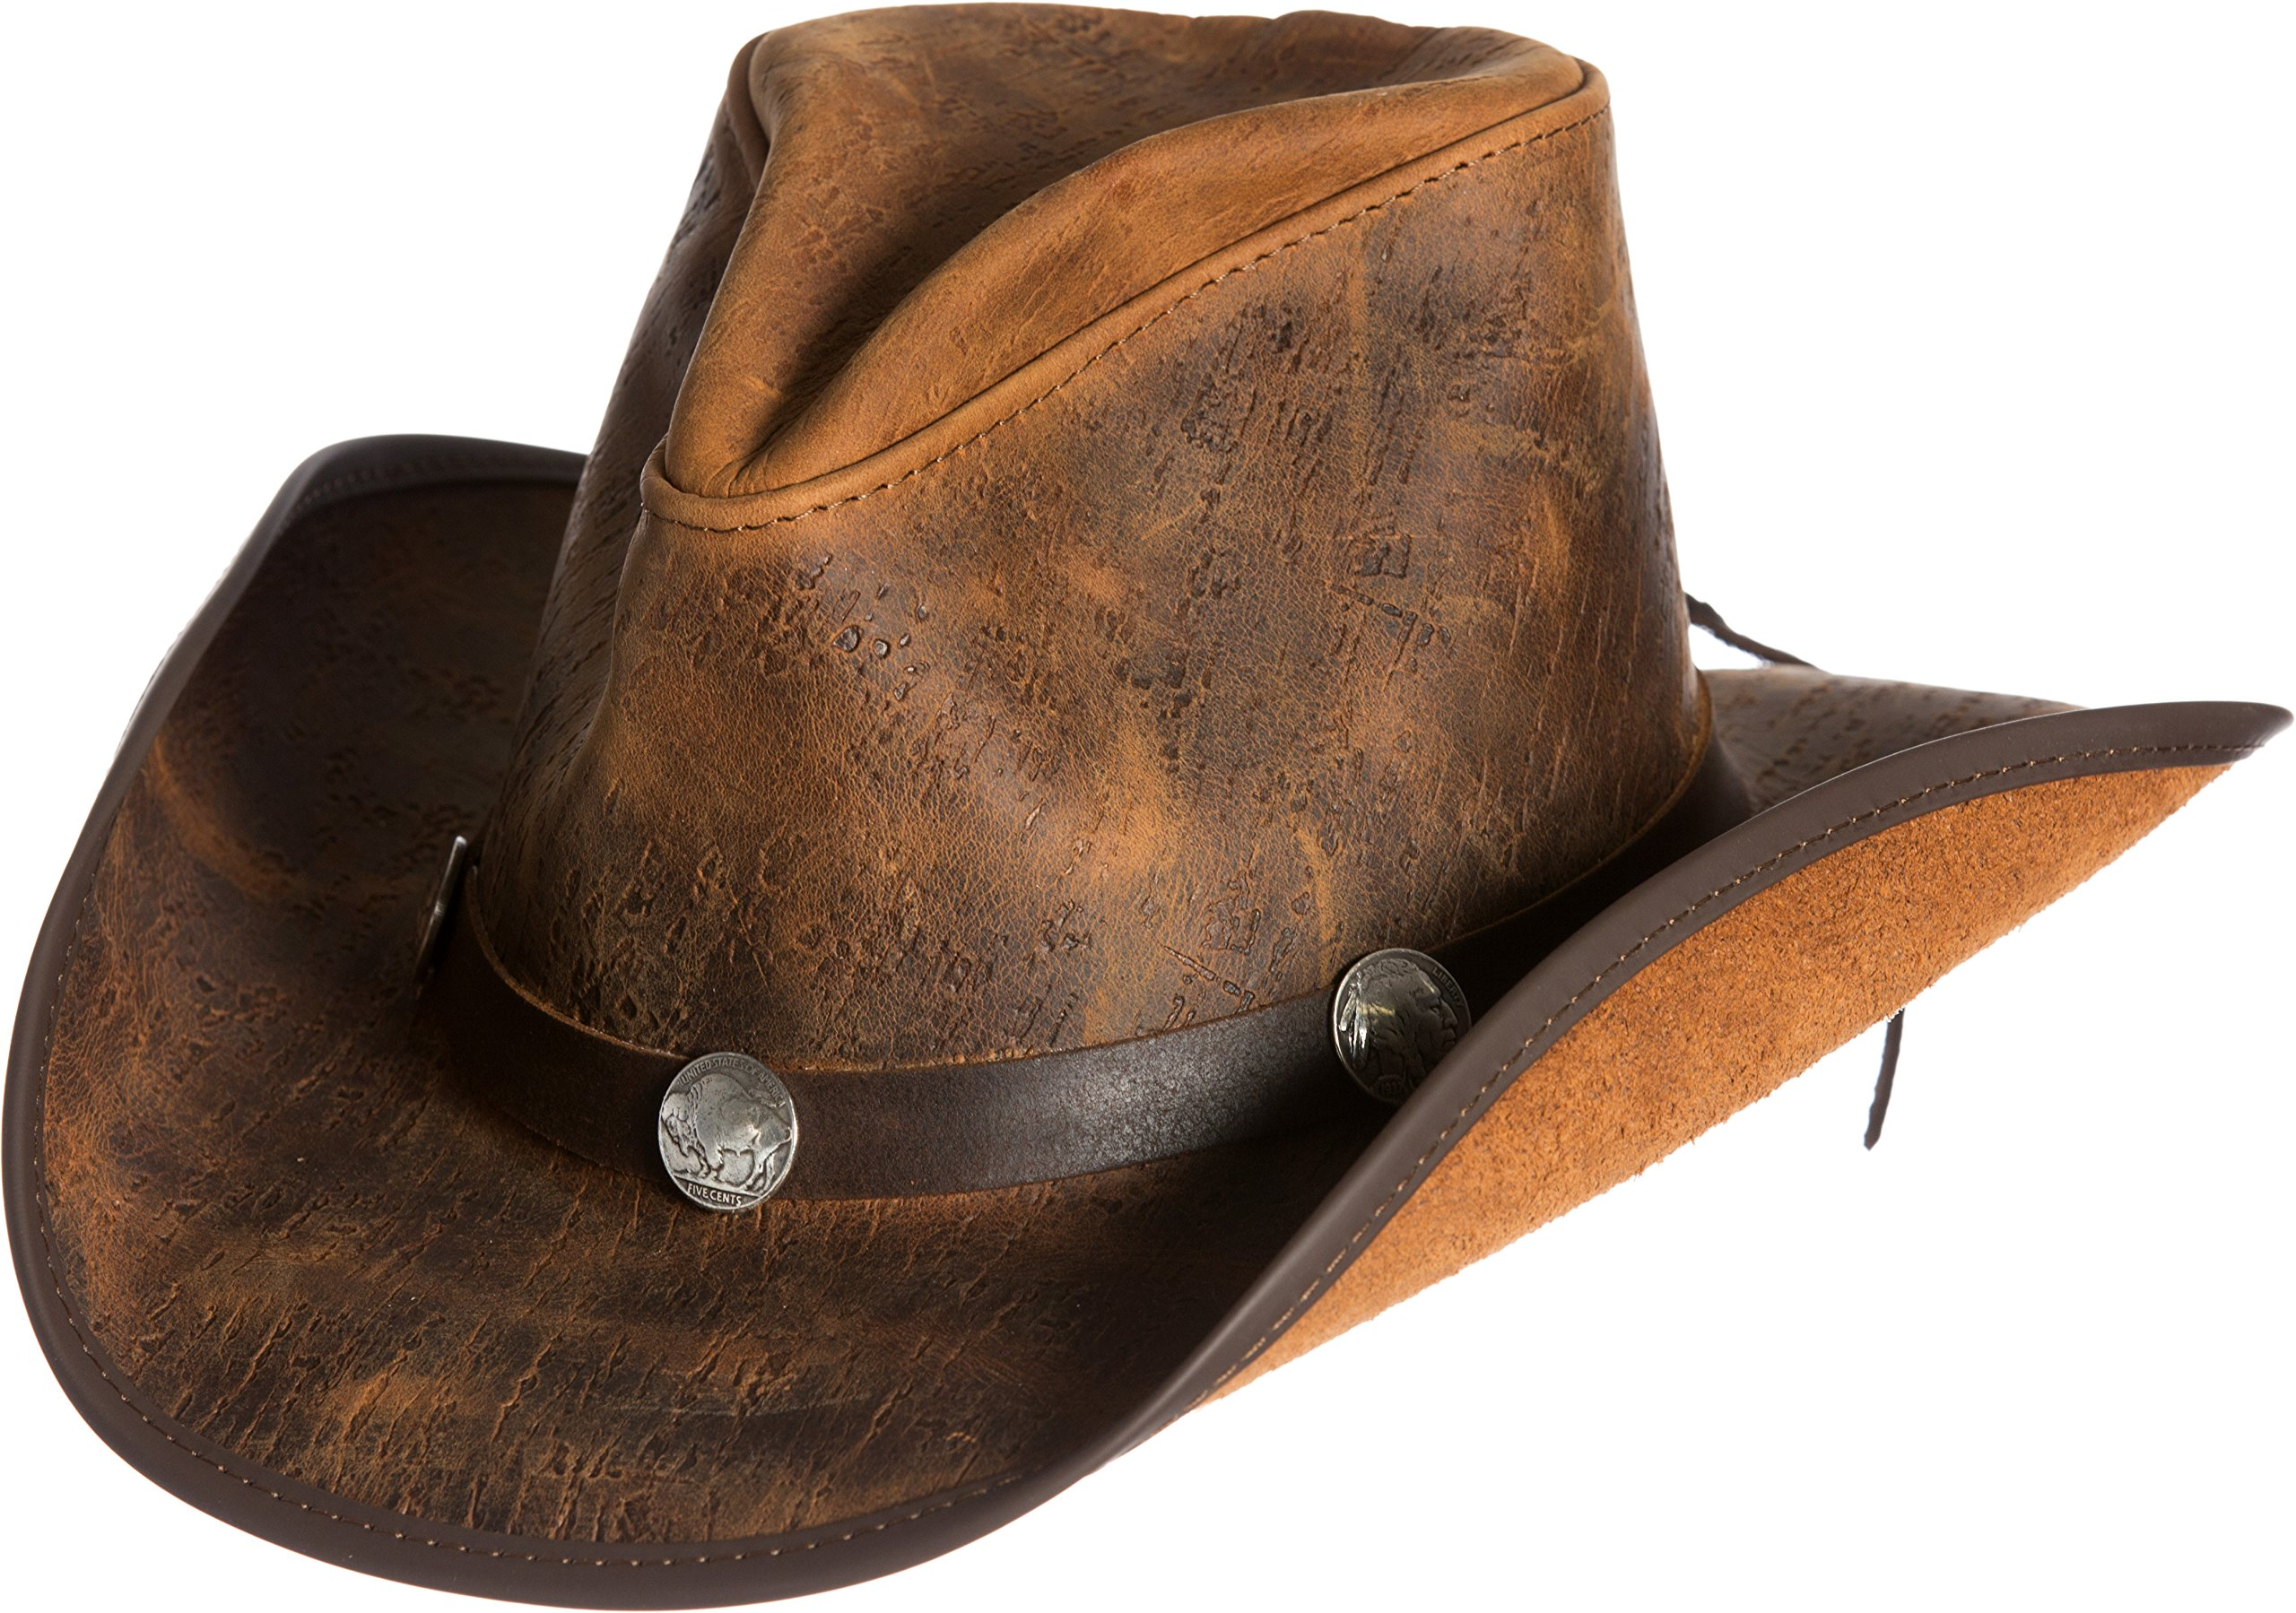 Overland Sheepskin Co Cyclone Leather Cowboy Hat With Buffalo nickels by Overland Sheepskin Co